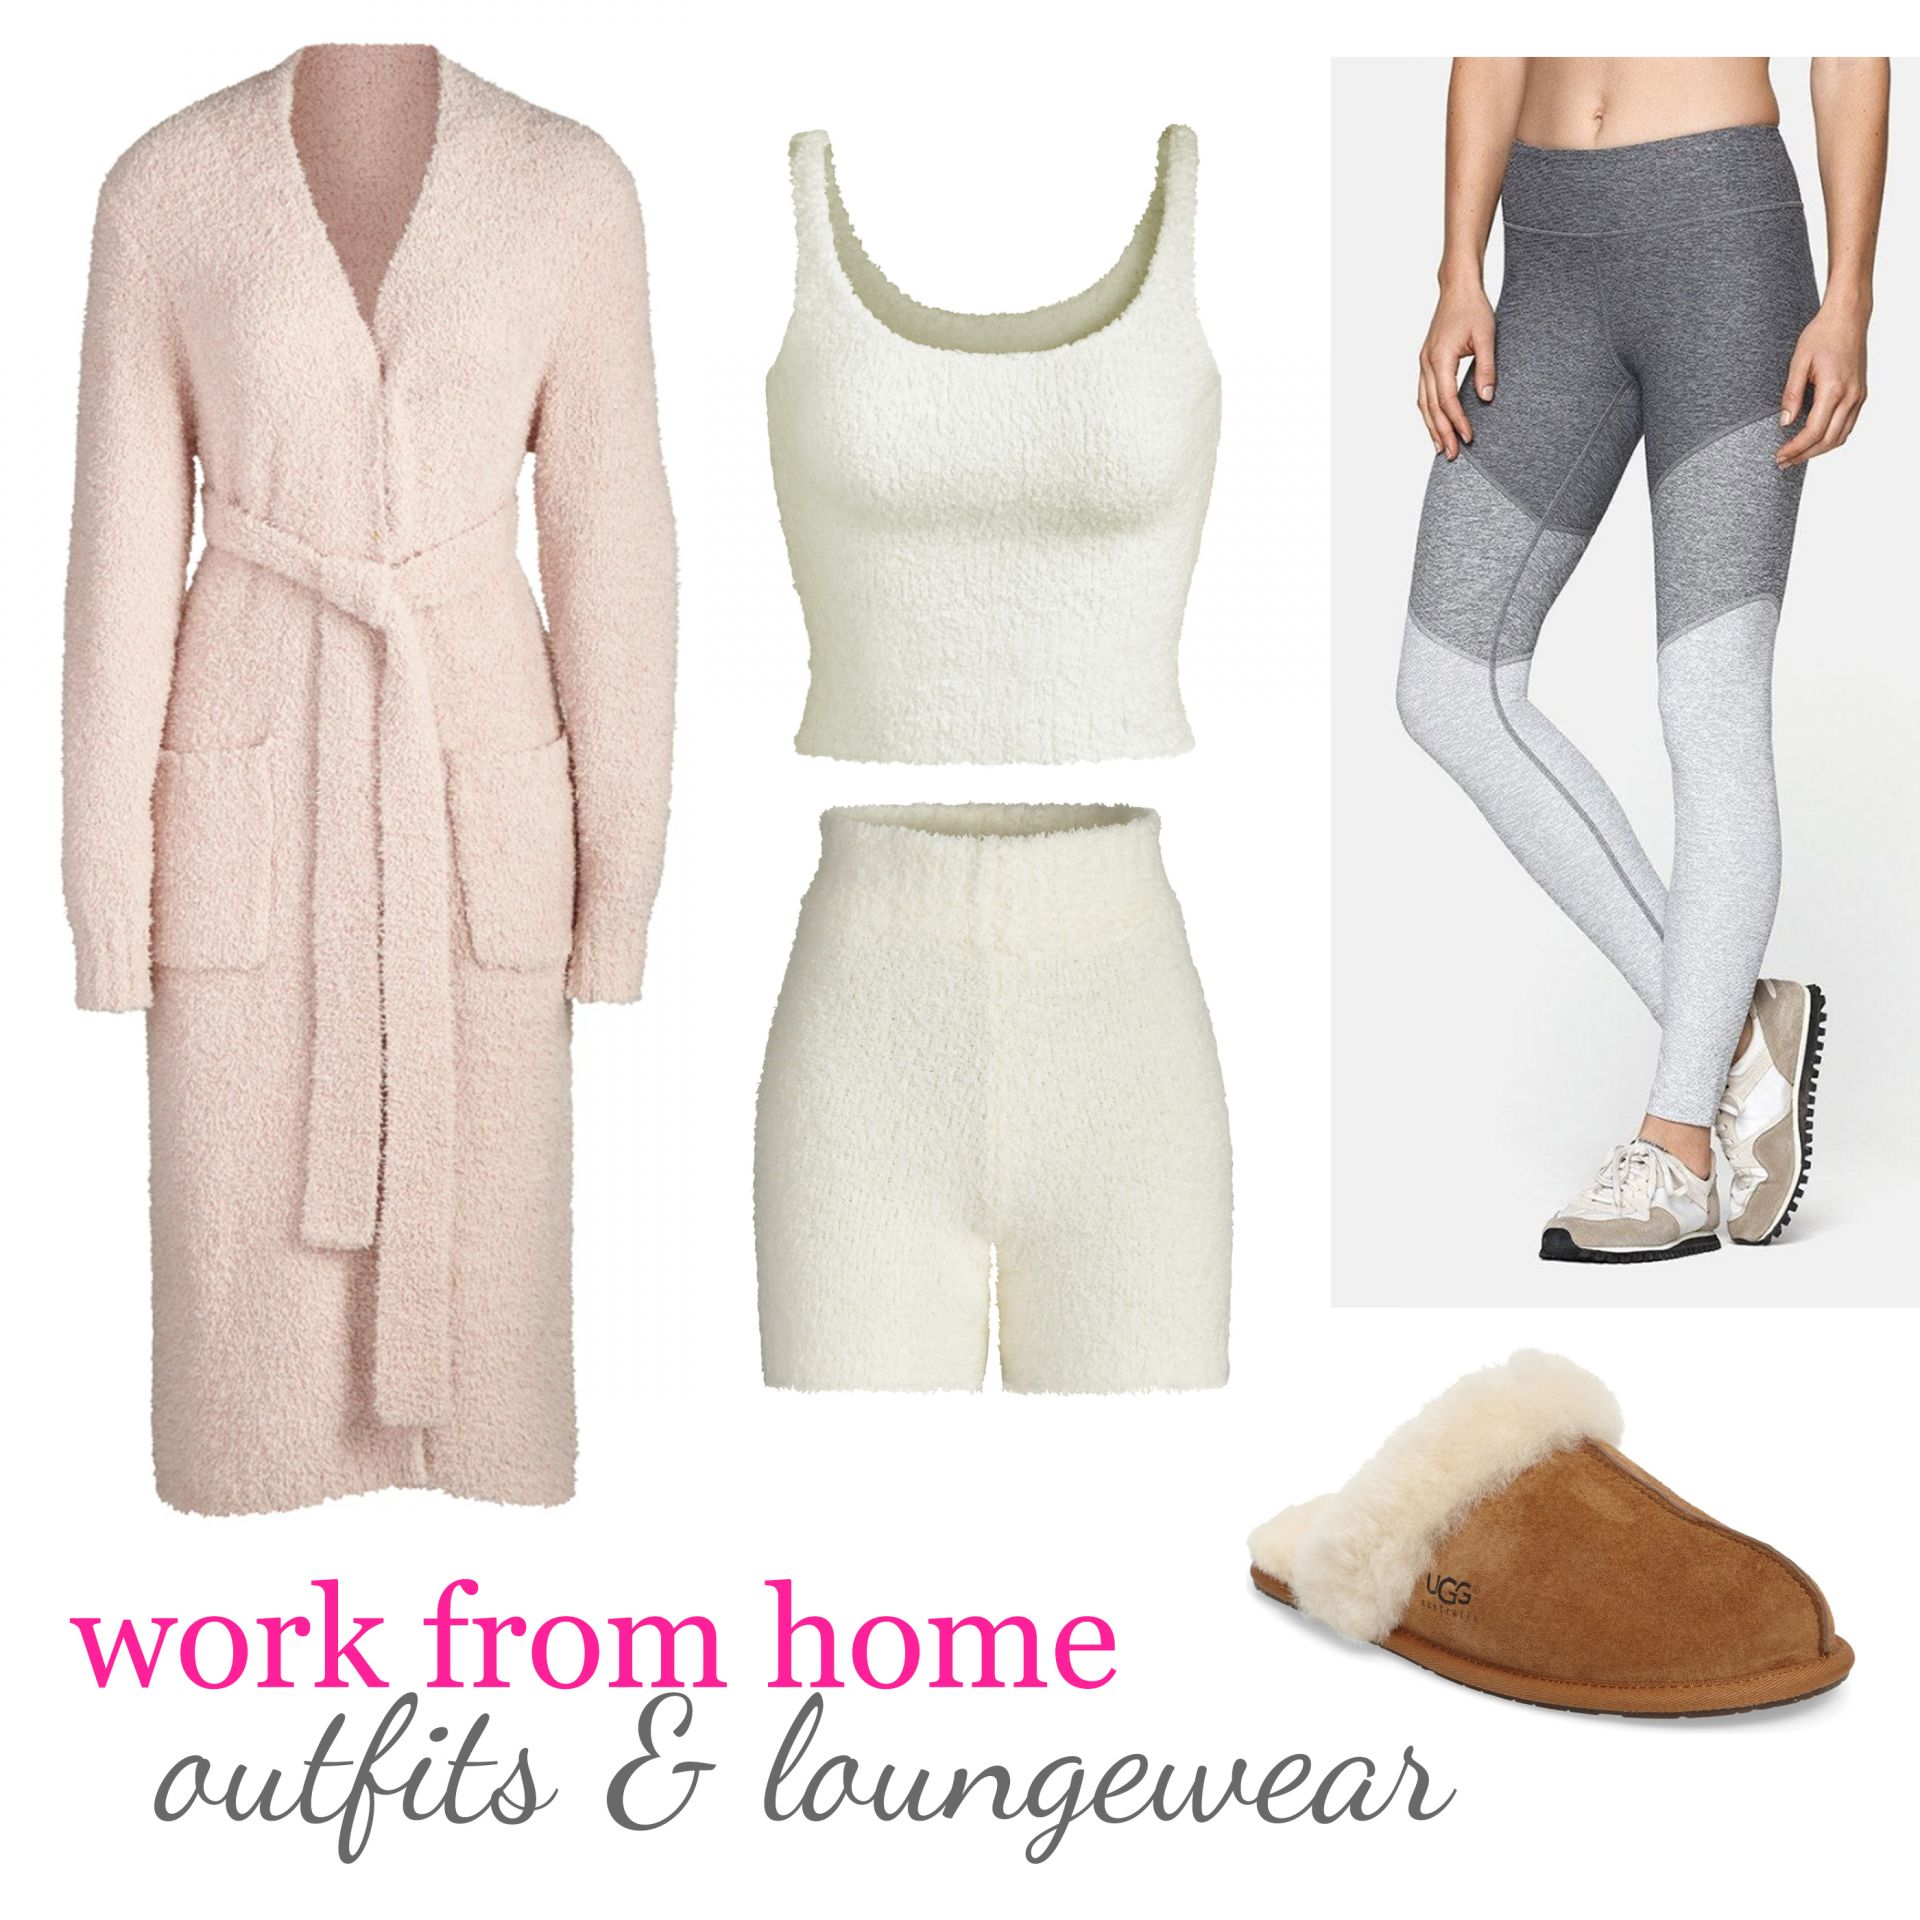 work from home outfits loungewear